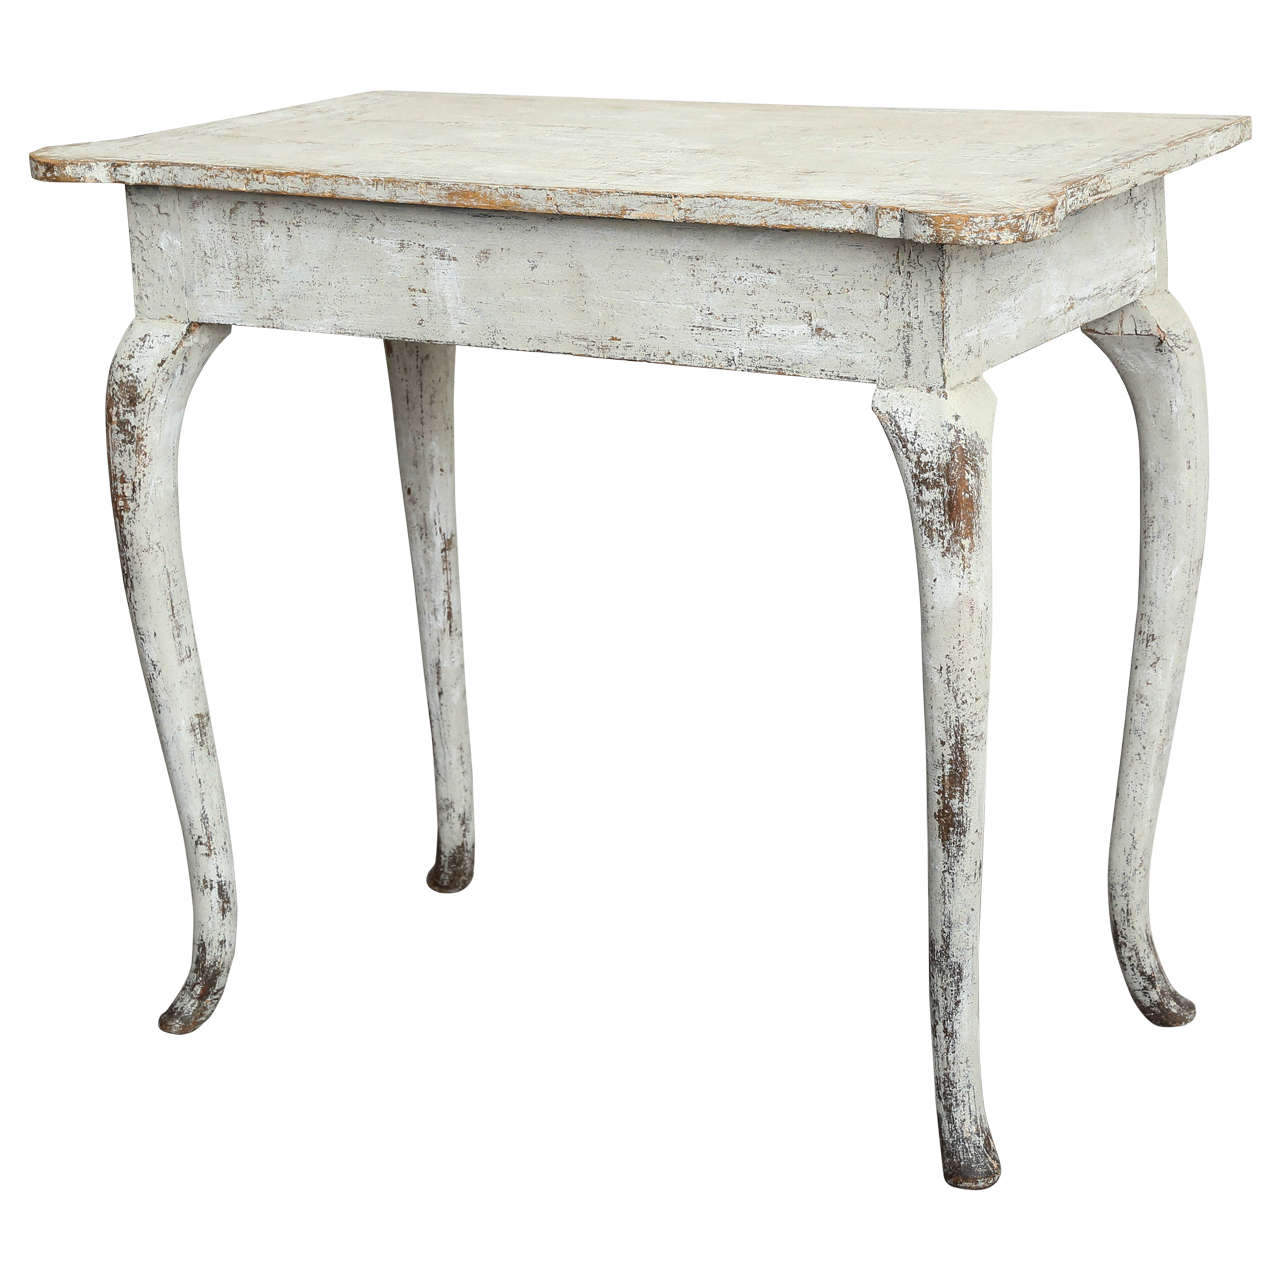 Charmant Swedish Rococo Side Table, Circa 1770 For Sale